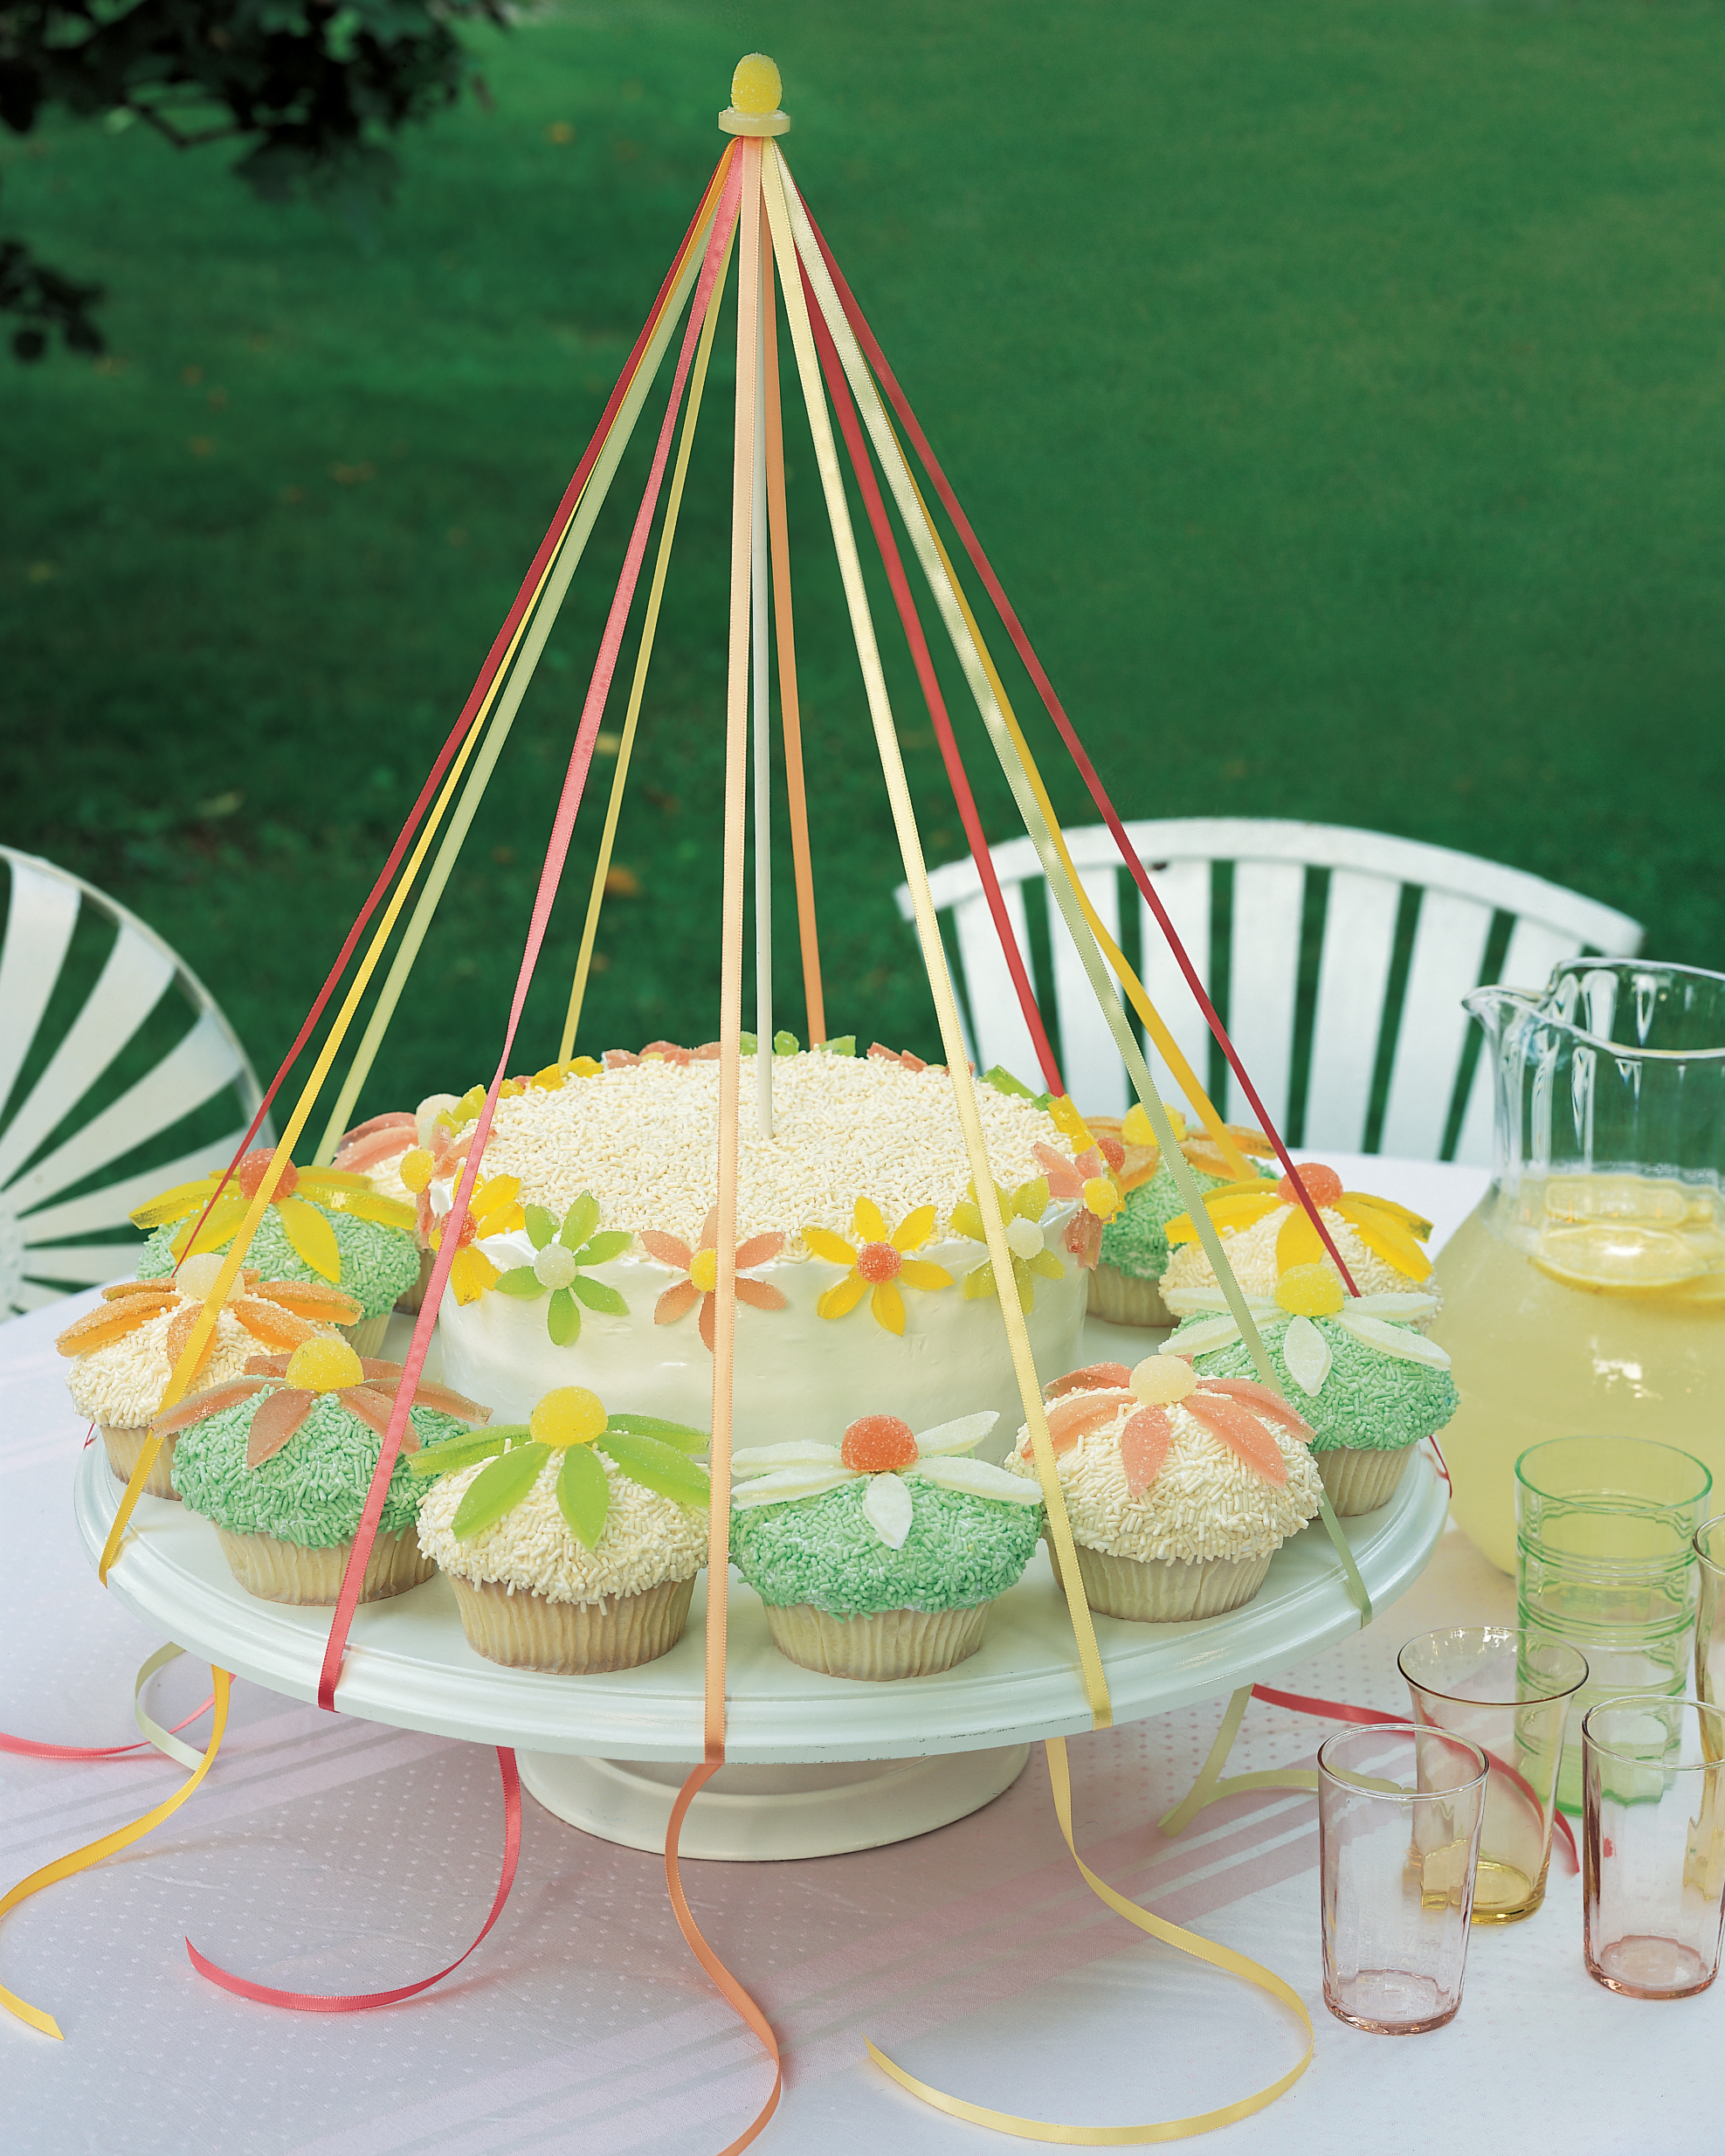 Make a Maypole Cake